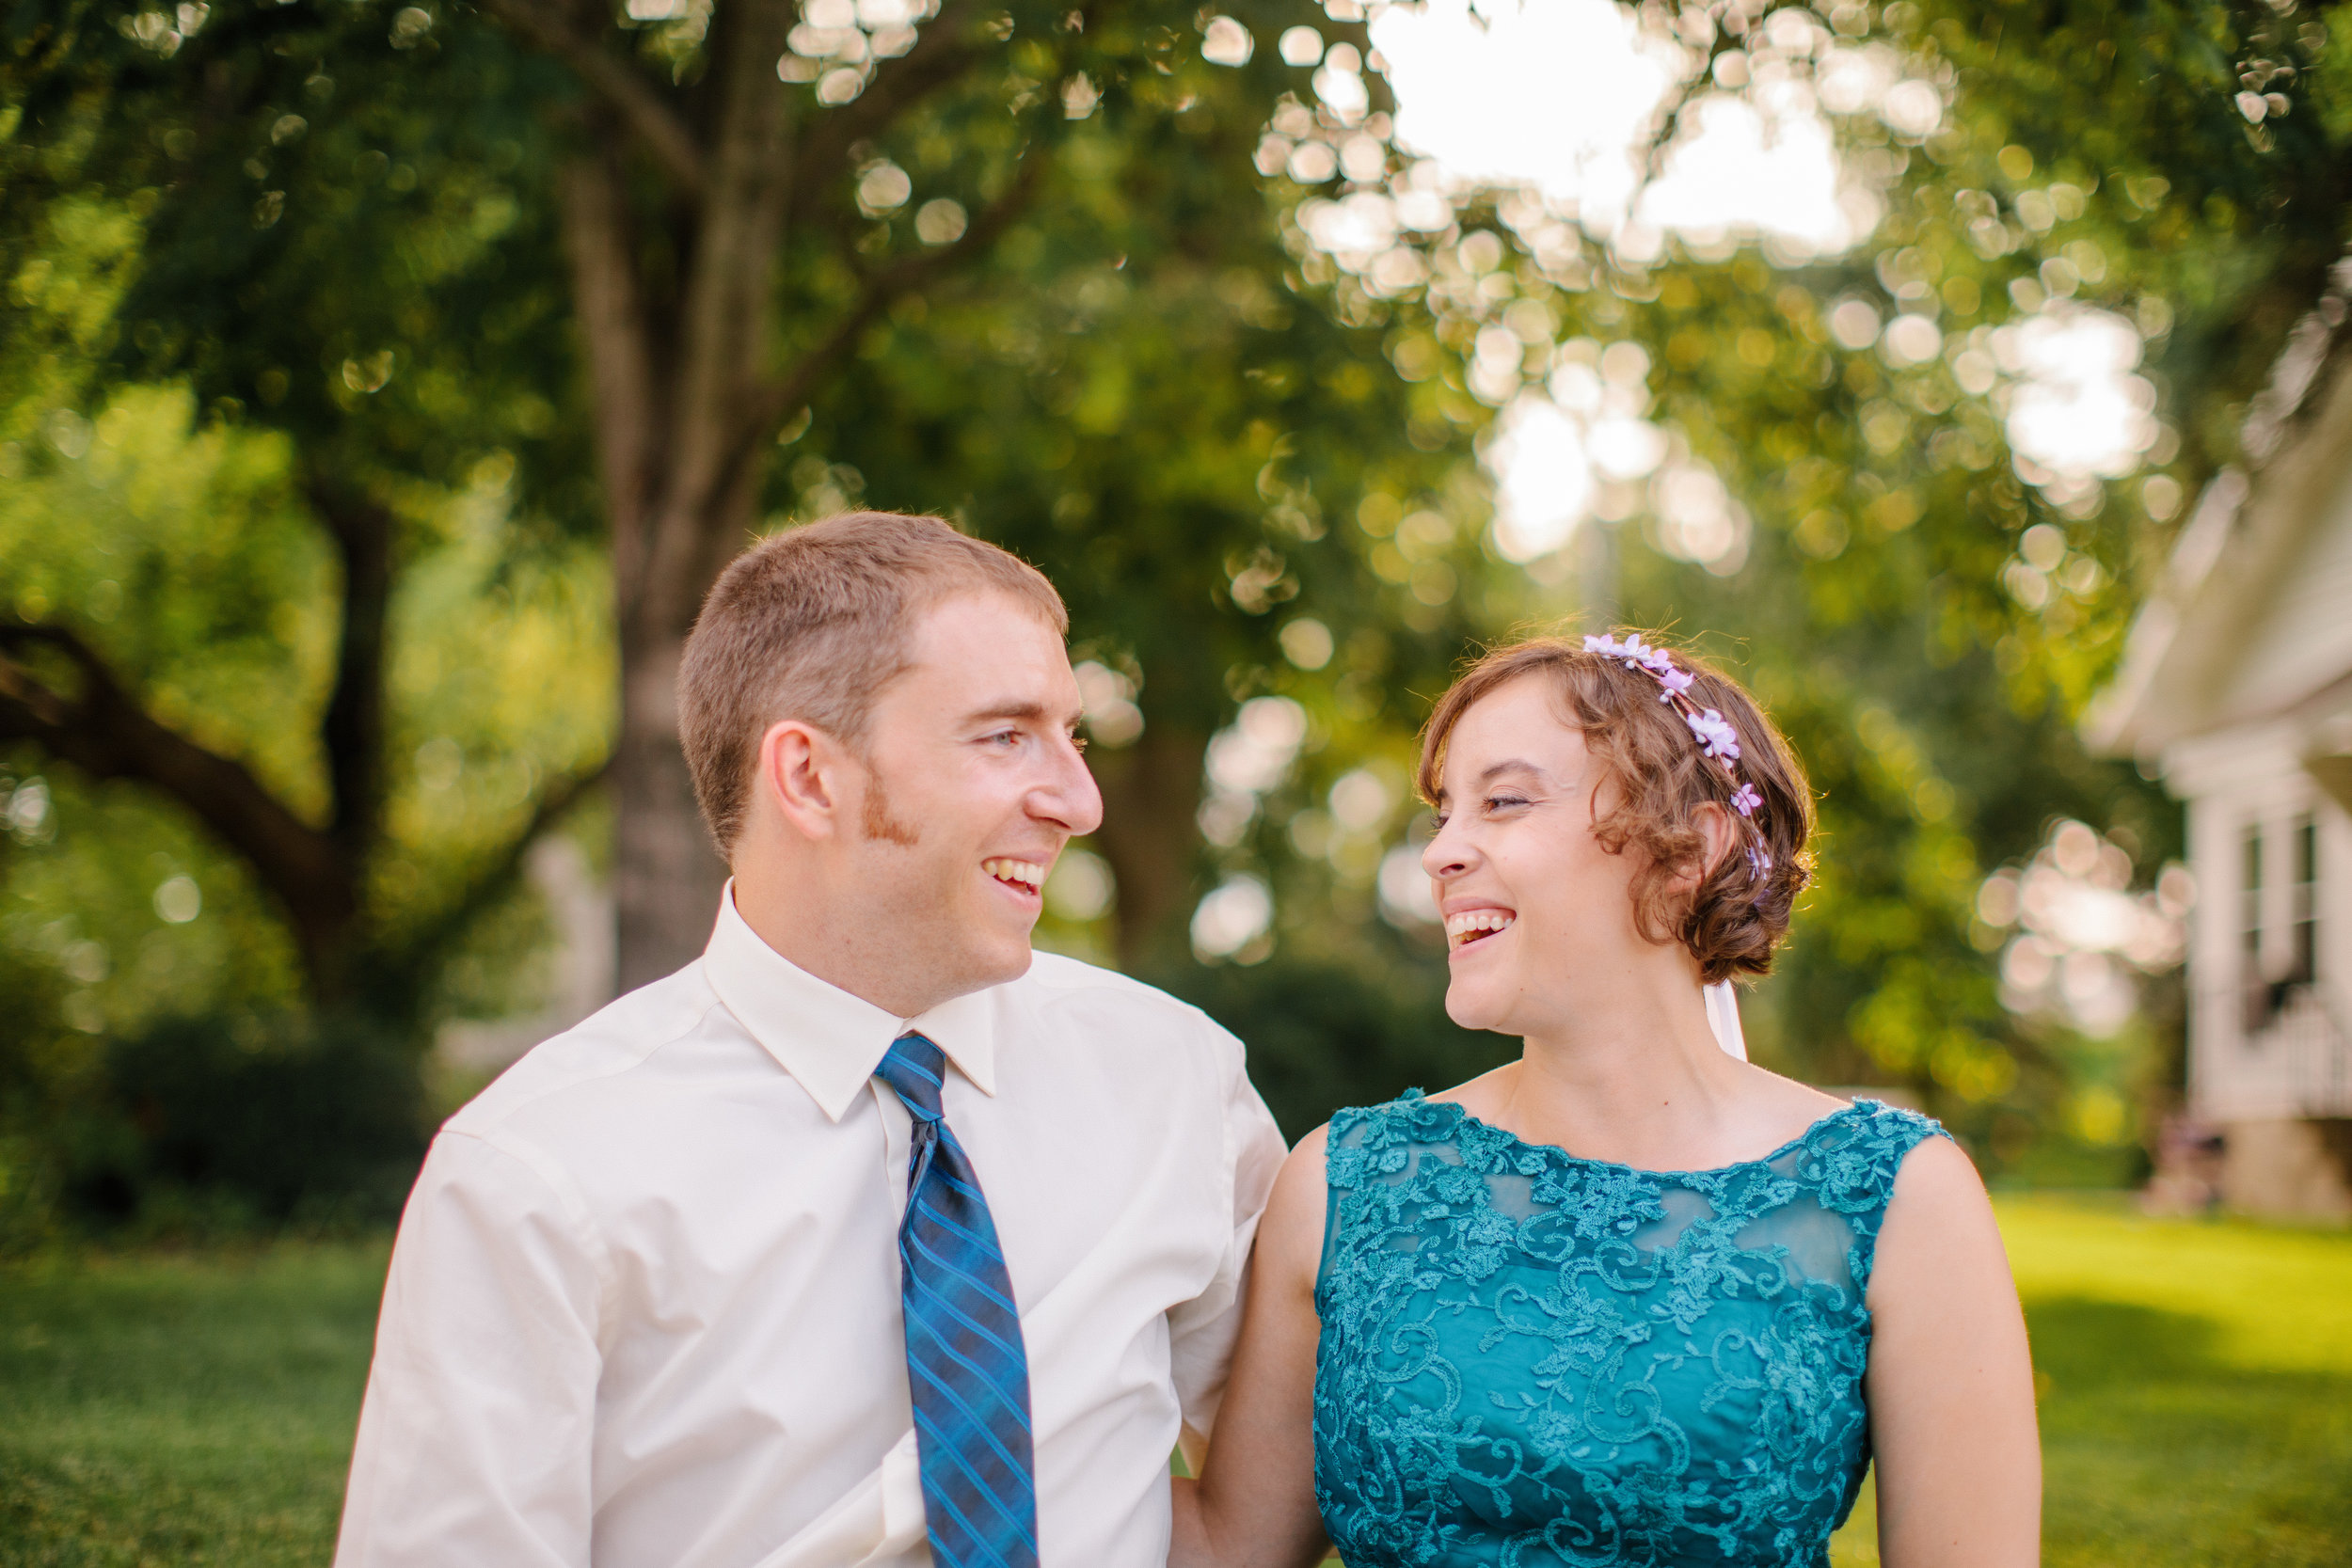 laughing together bride and groom wedding day pictures